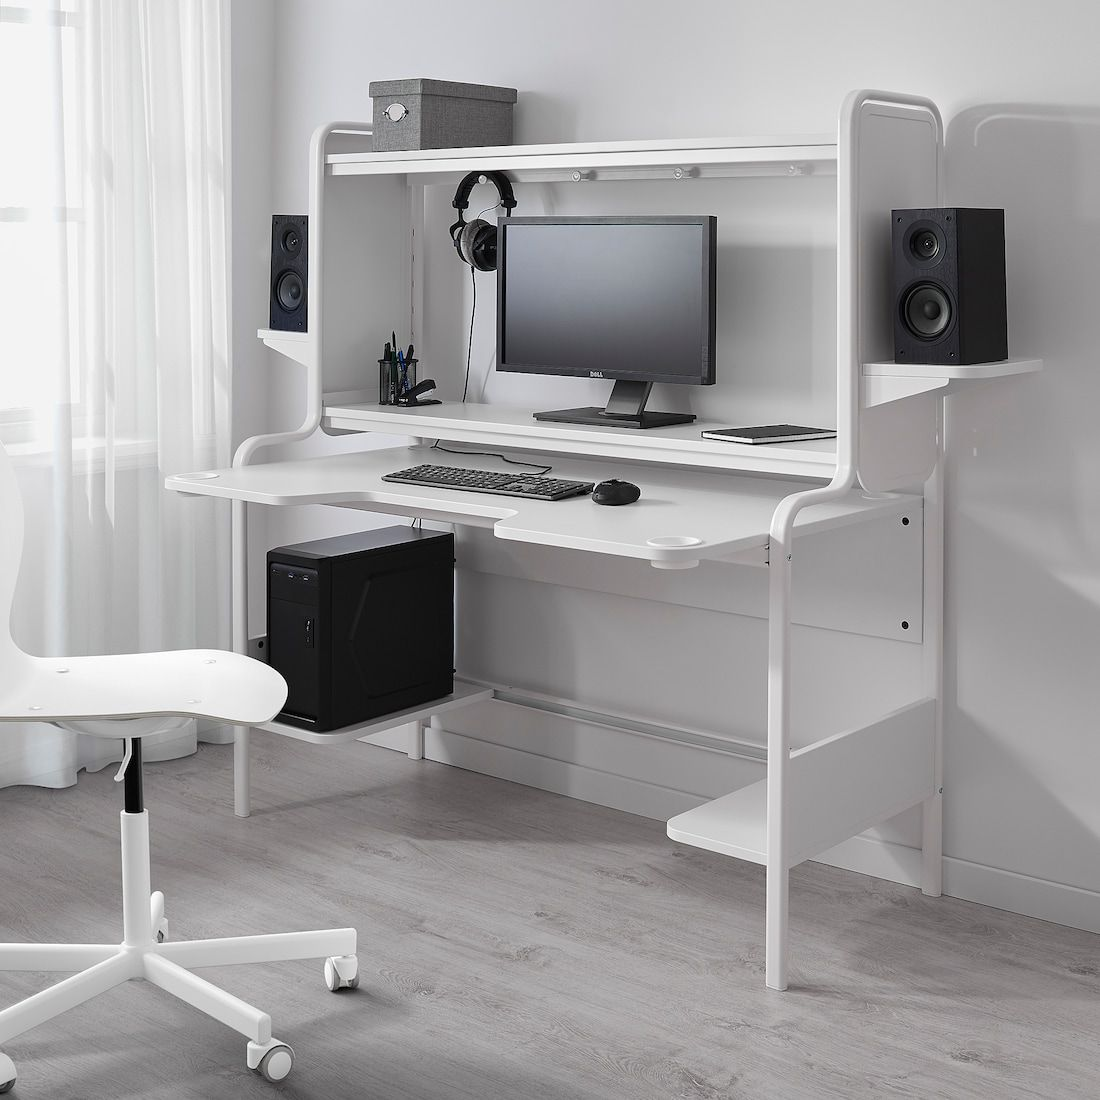 Fredde White Desk Ikea In 2020 Gaming Desk Designs Ikea Gaming Desk Gaming Desk